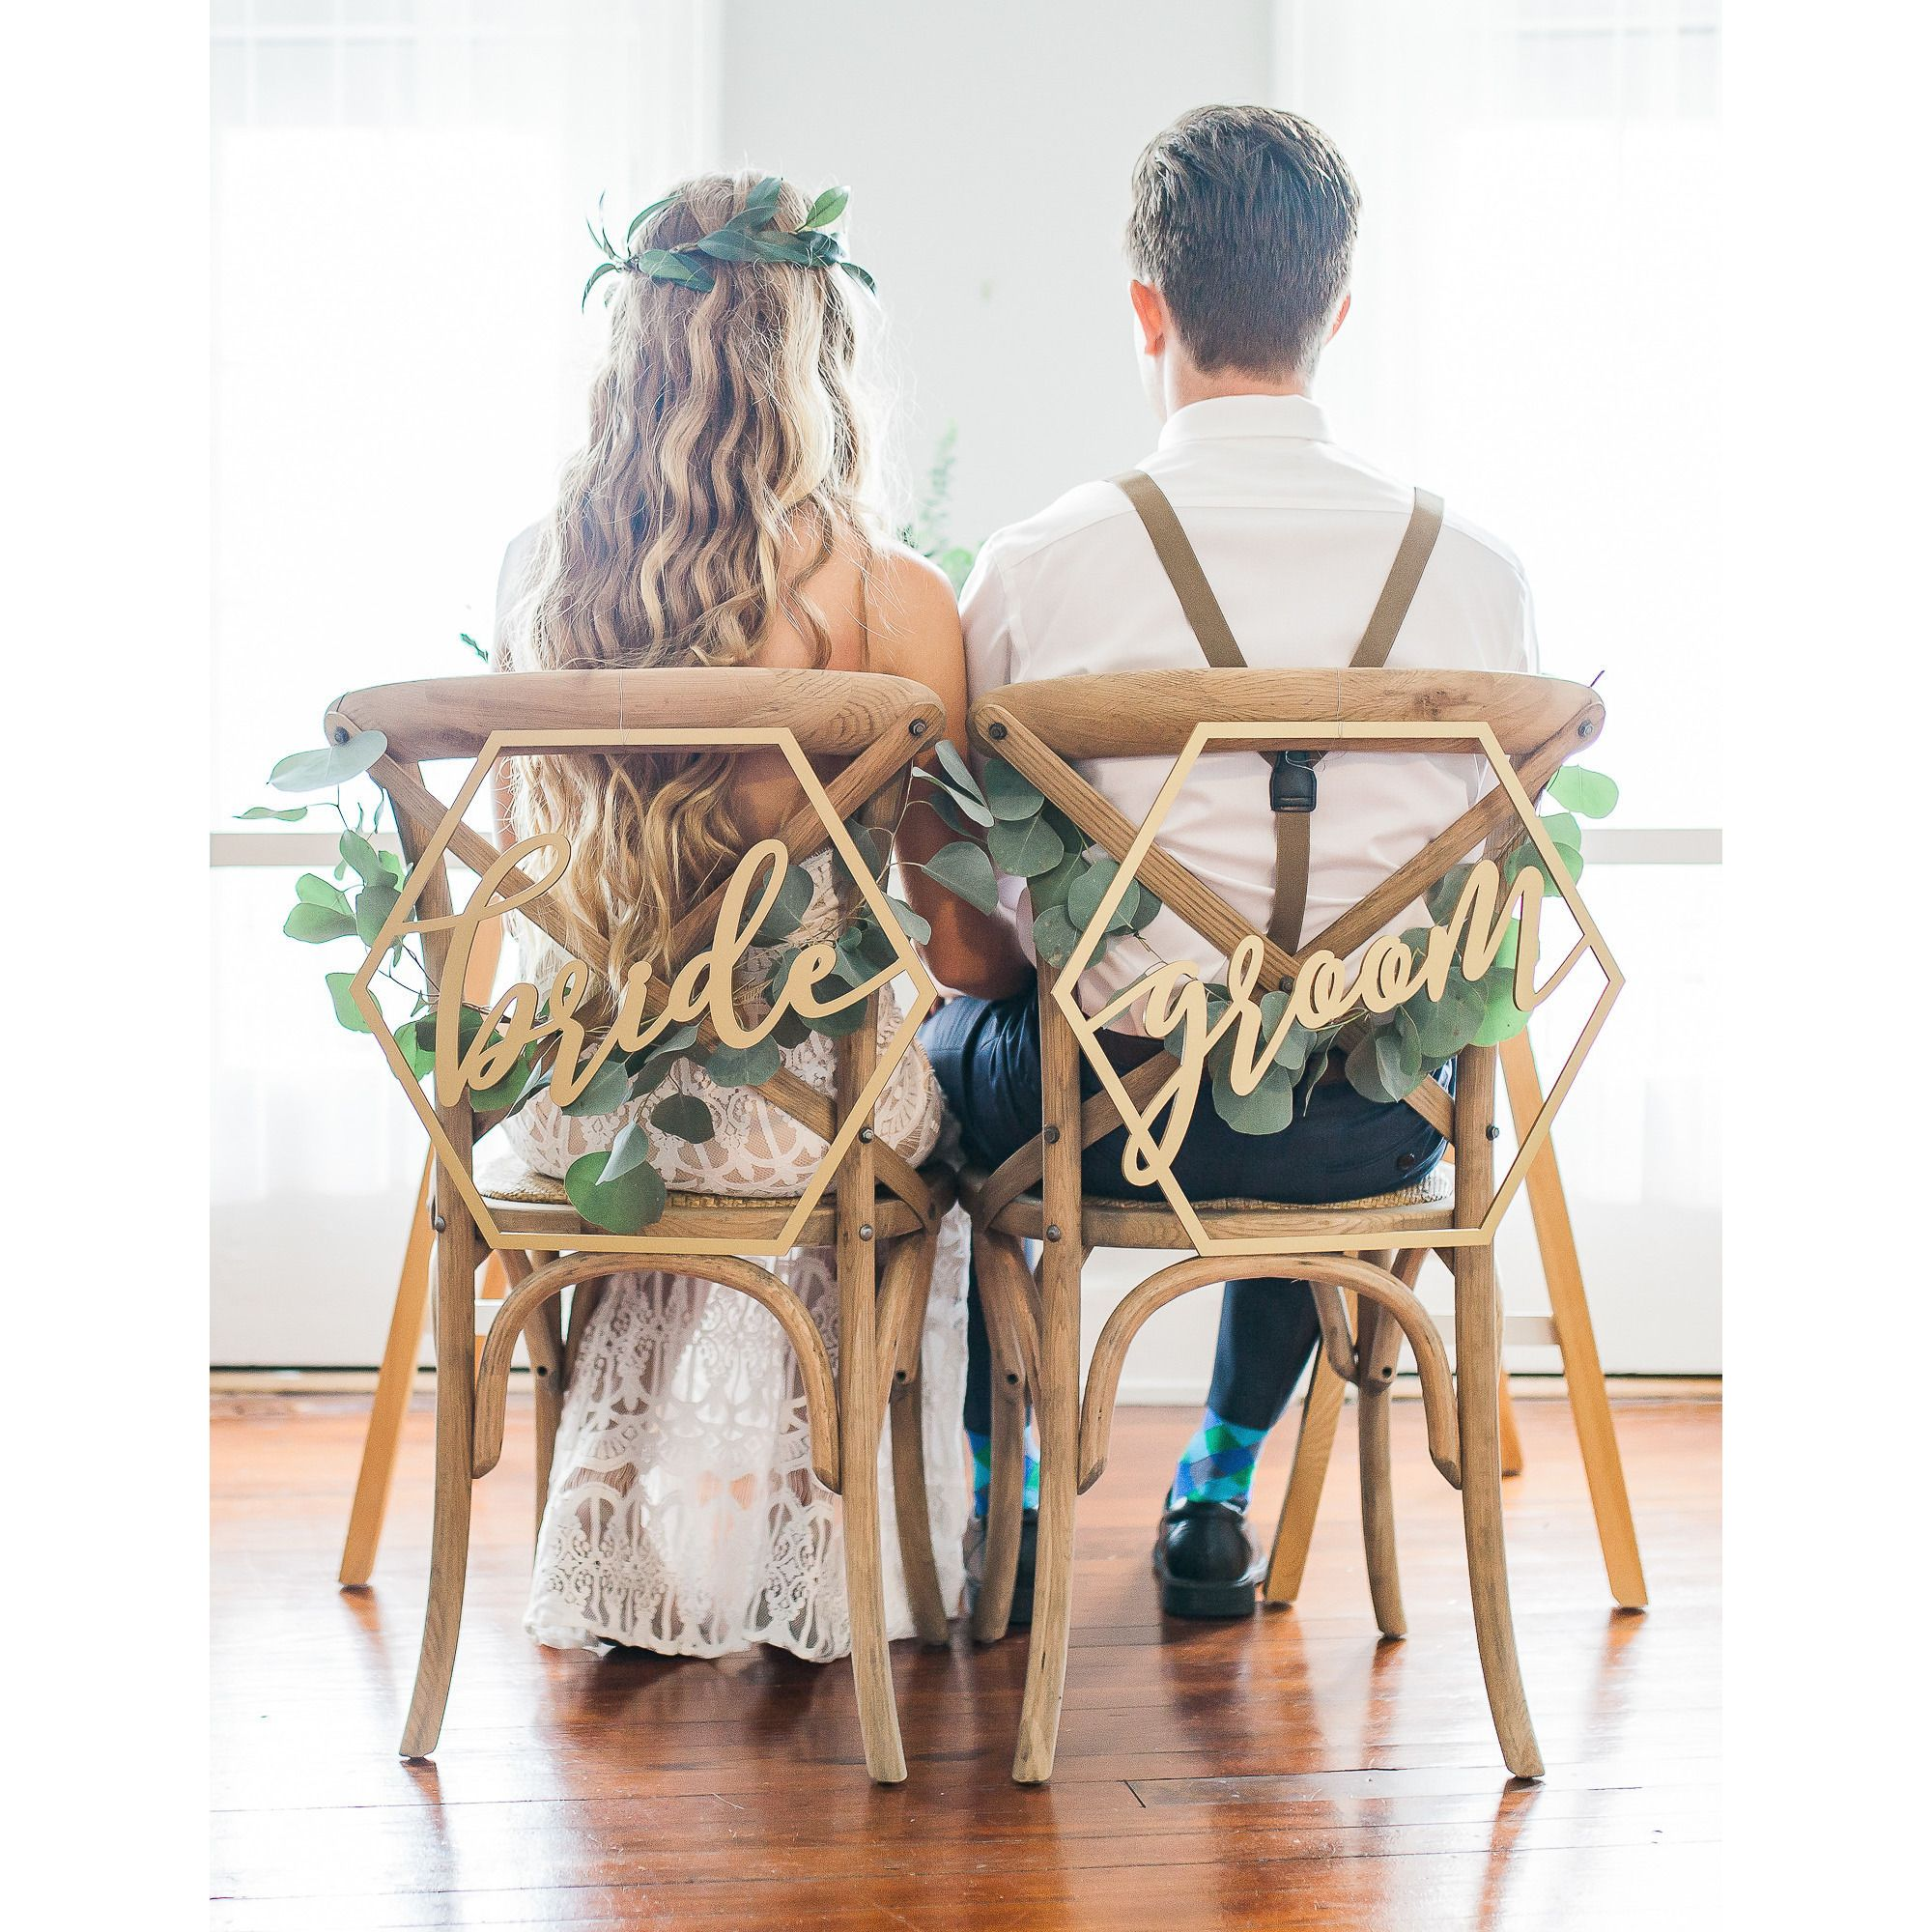 20 Chic Wedding Chair Decoration Ideas for Bride and Groom